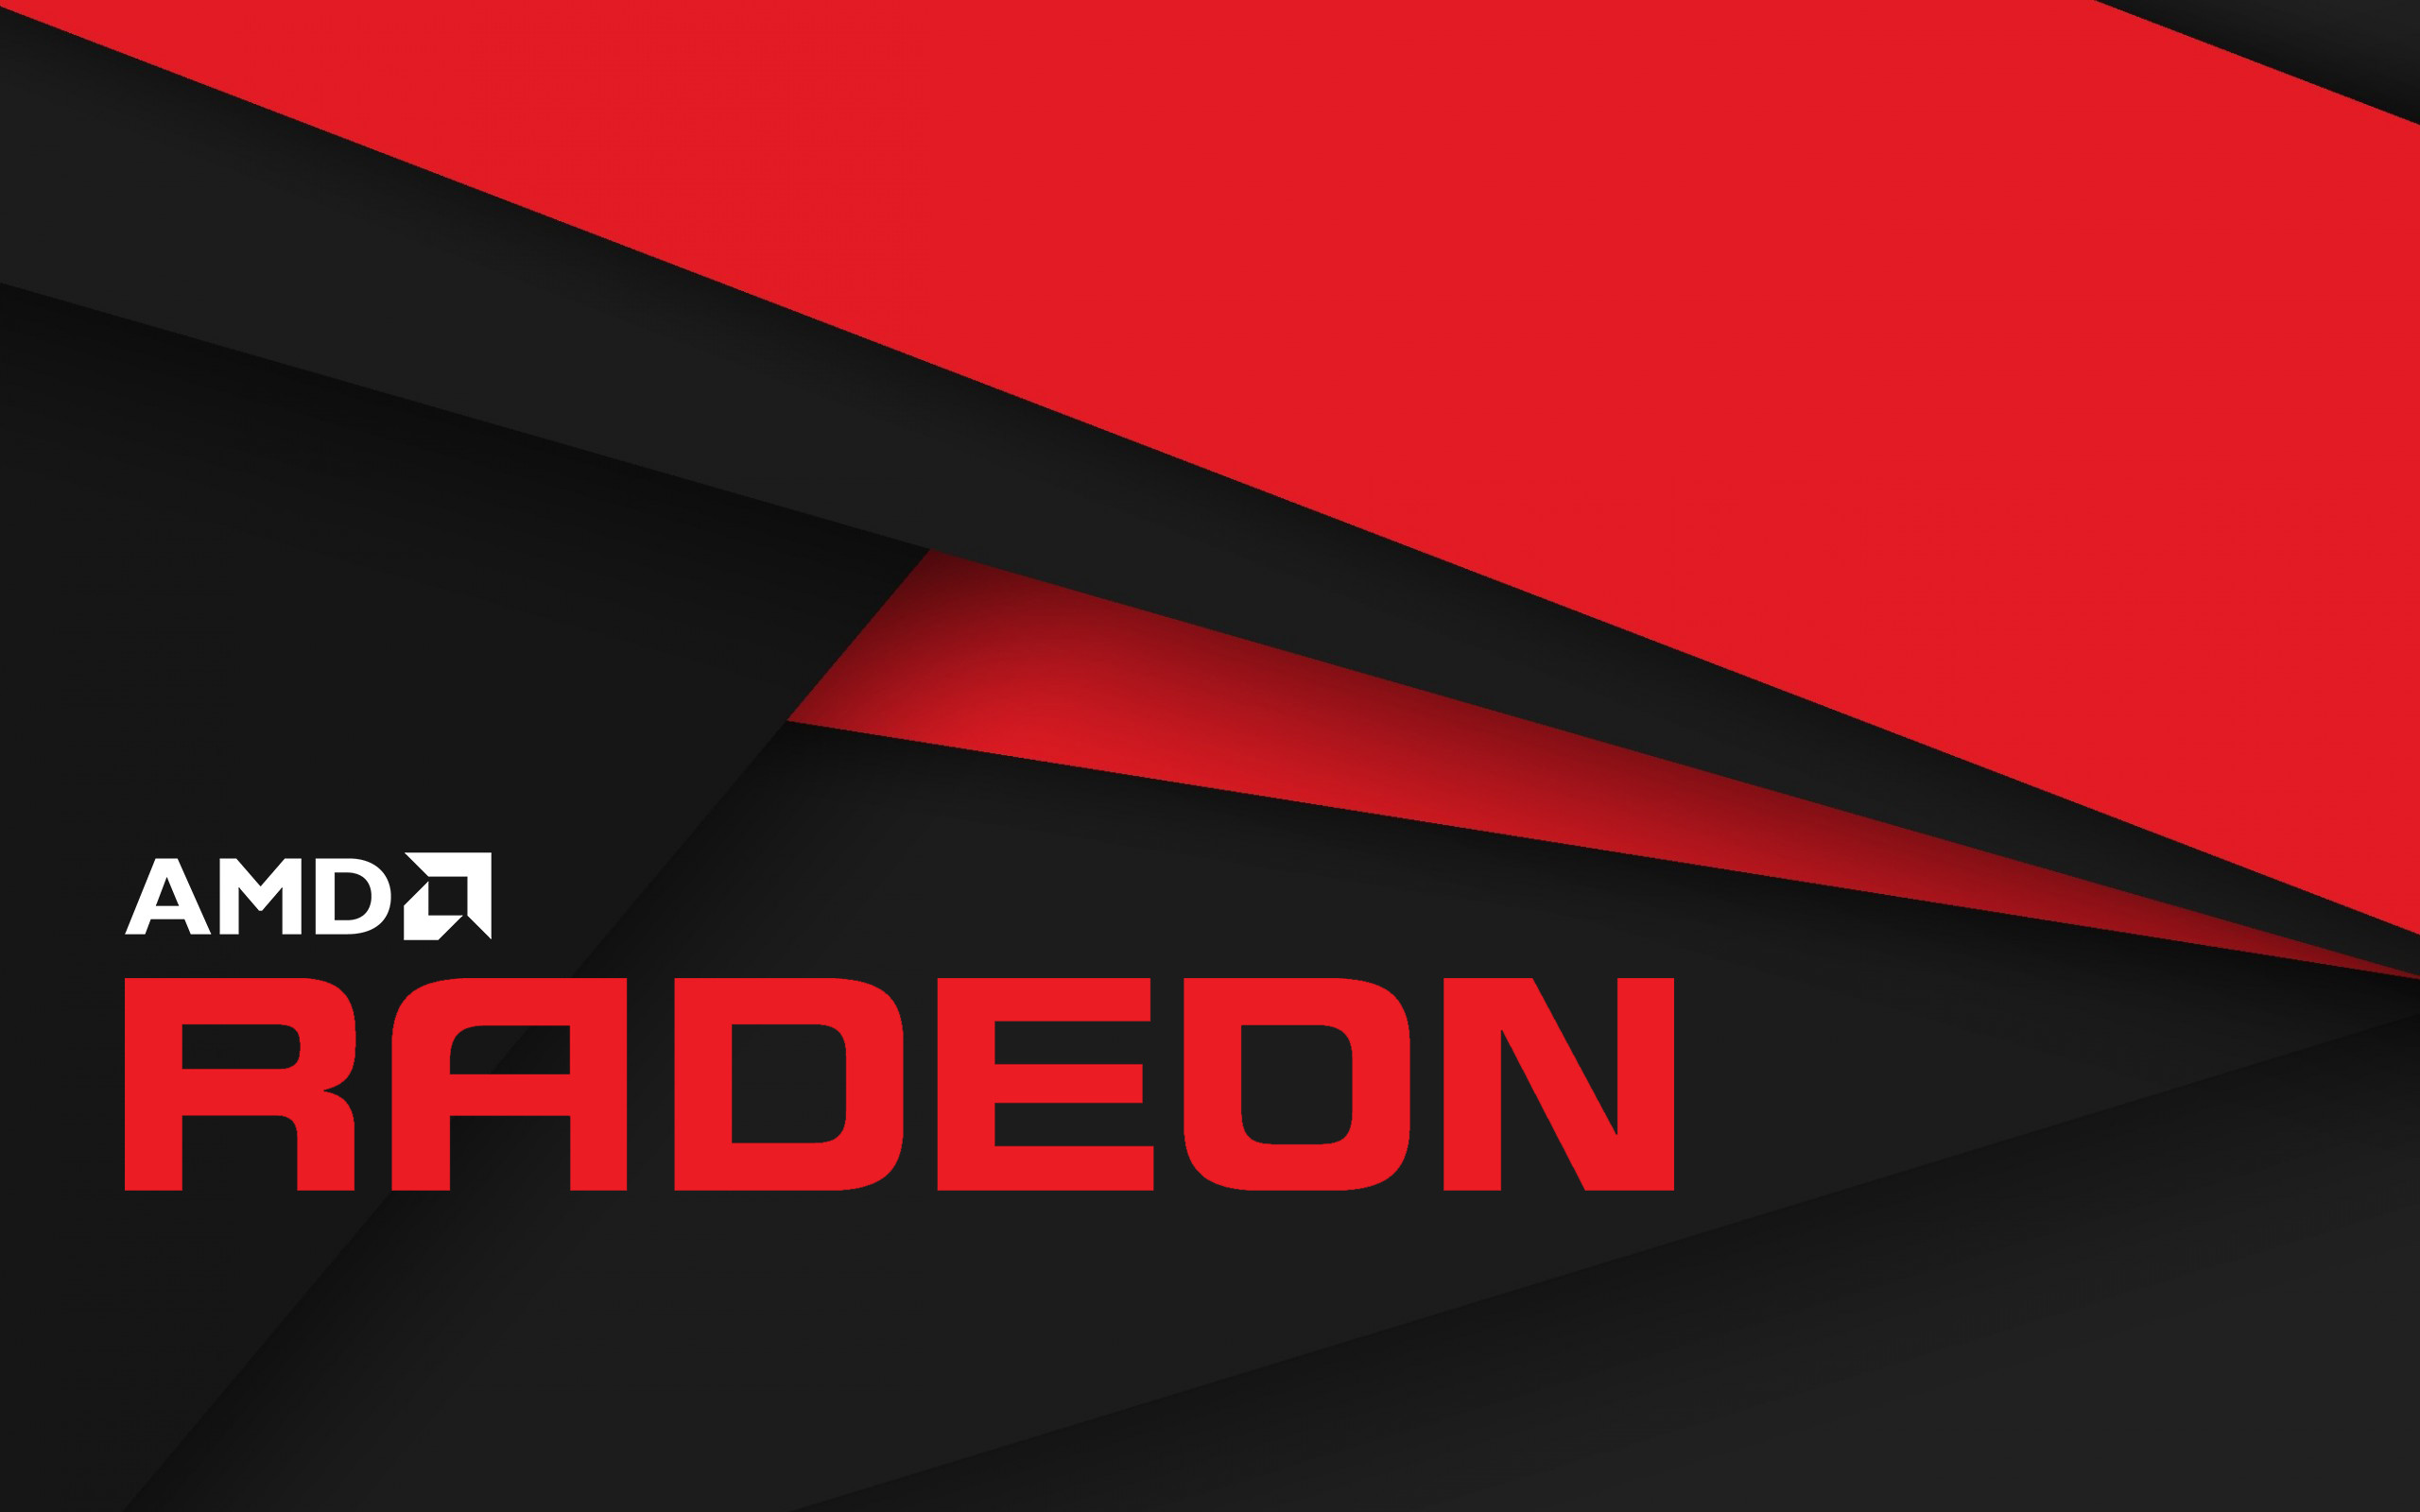 amd radeon wallpapers (79+ images)